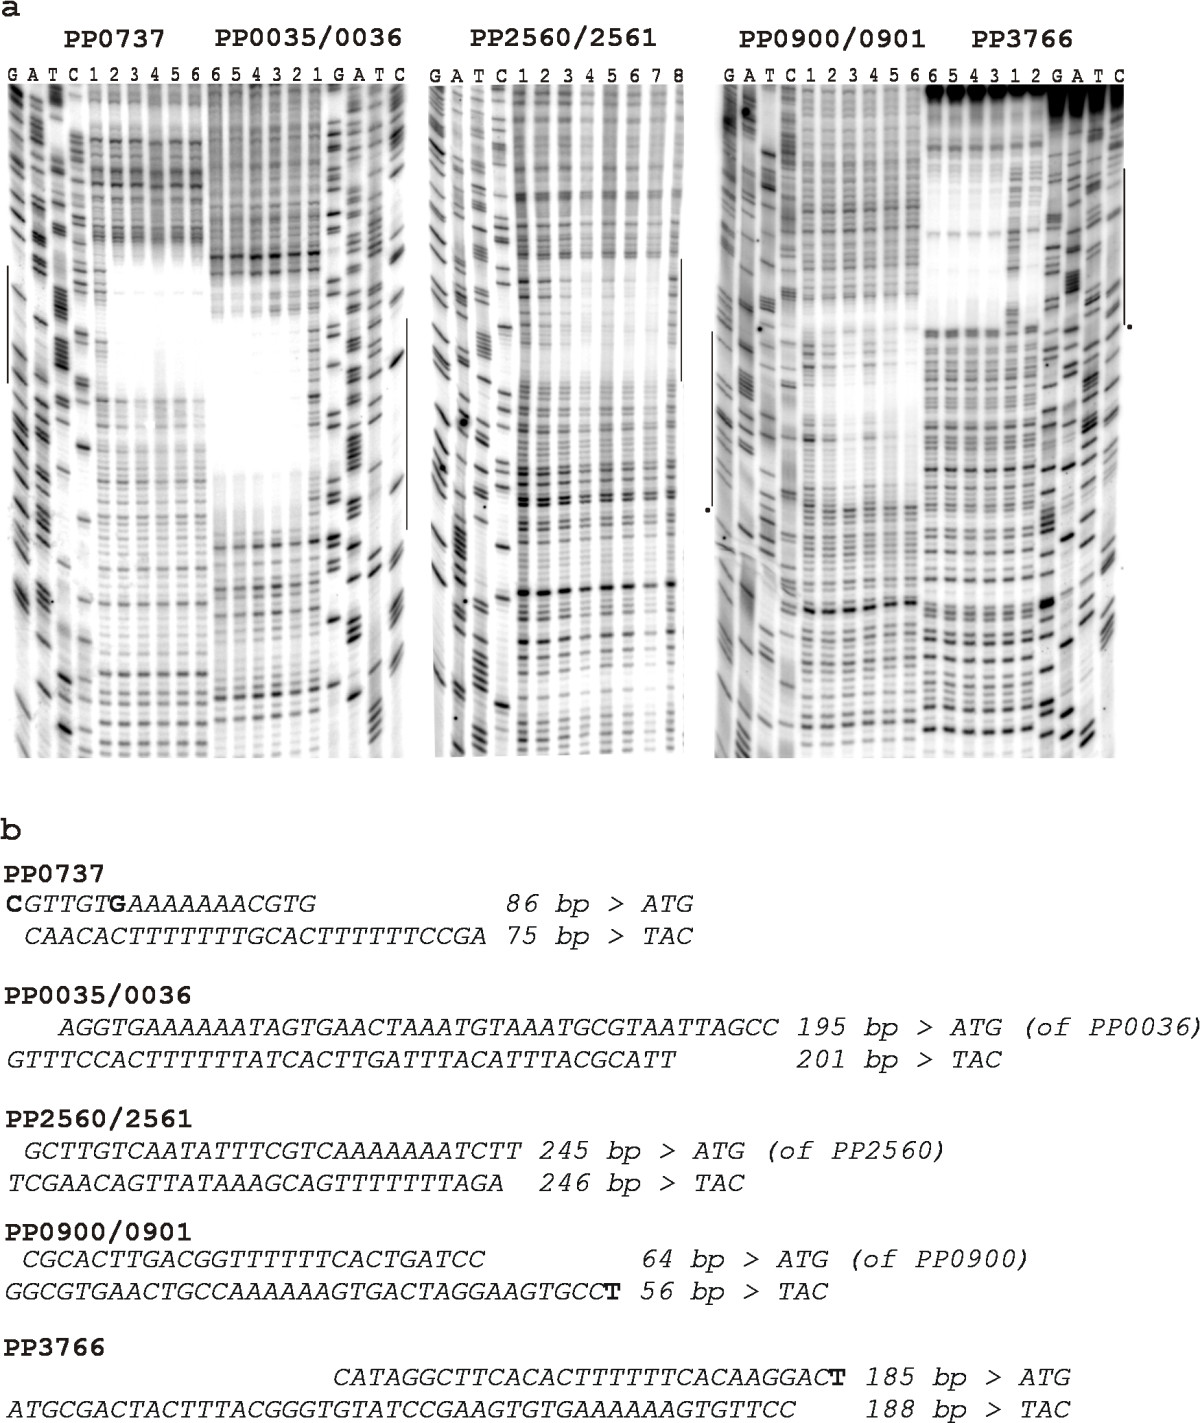 http://static-content.springer.com/image/art%3A10.1186%2F1471-2199-10-46/MediaObjects/12867_2008_Article_414_Fig4_HTML.jpg